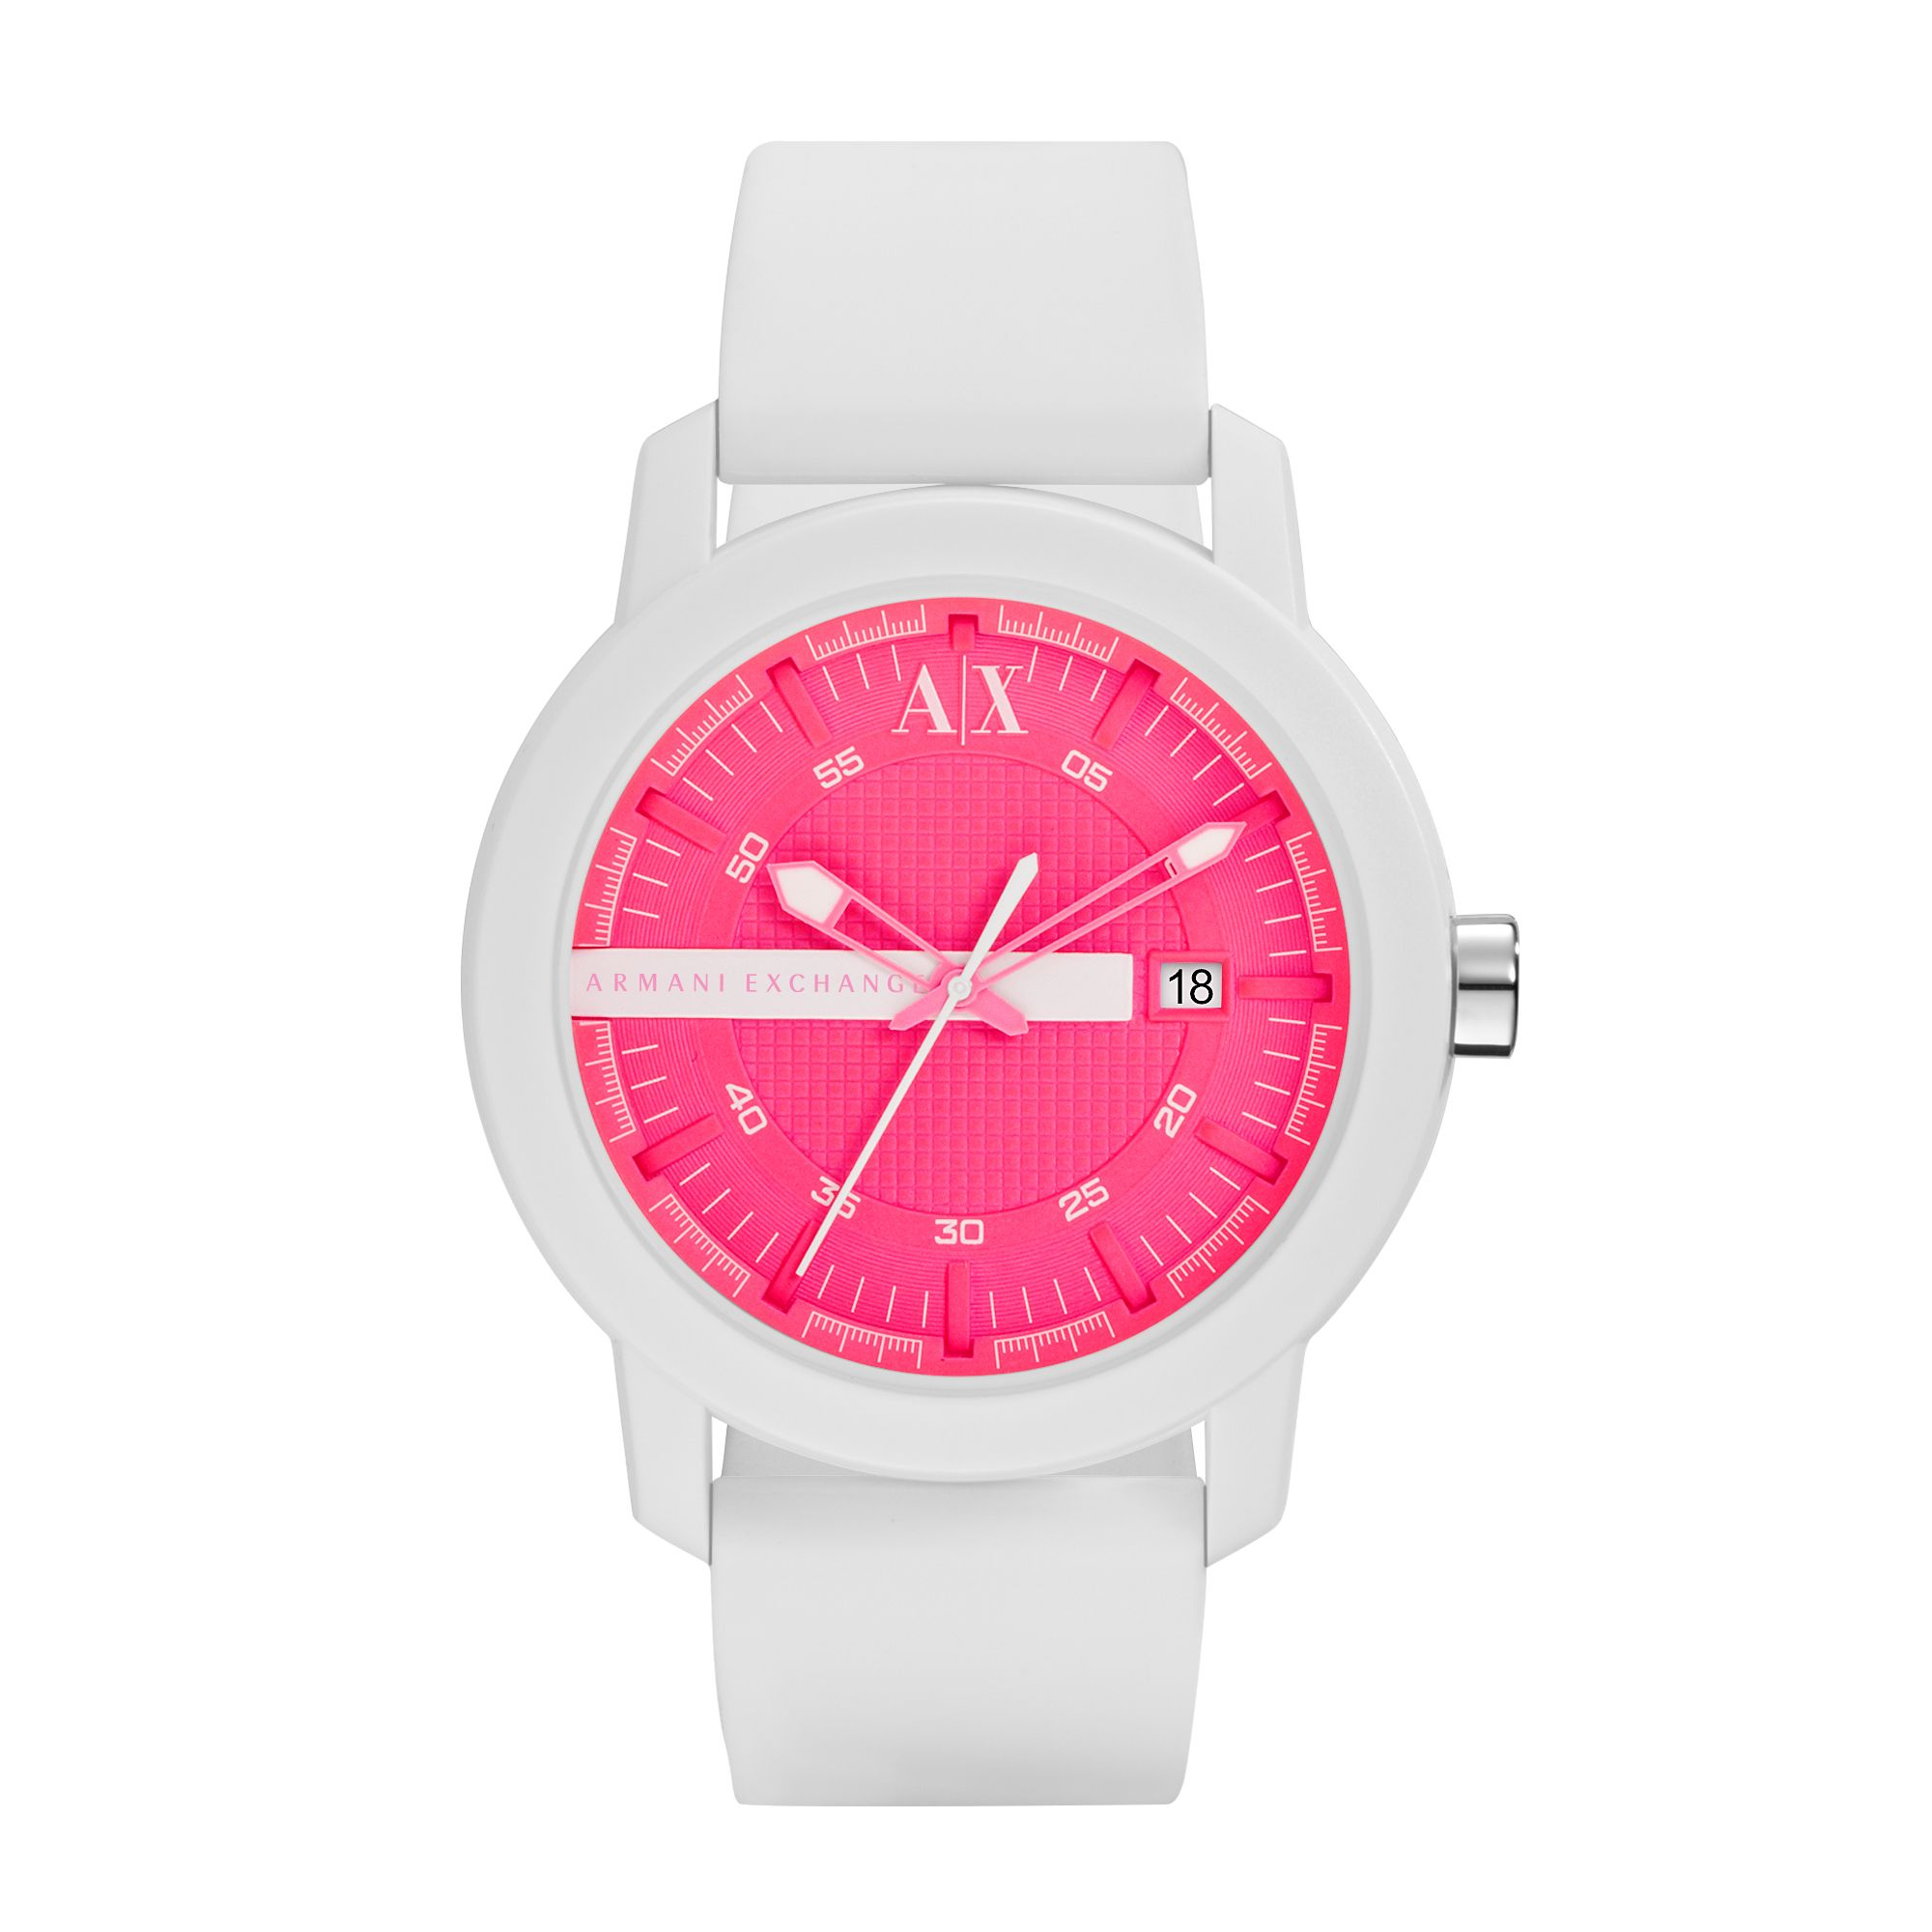 AX1240 Active White Silicone Unisex Watch